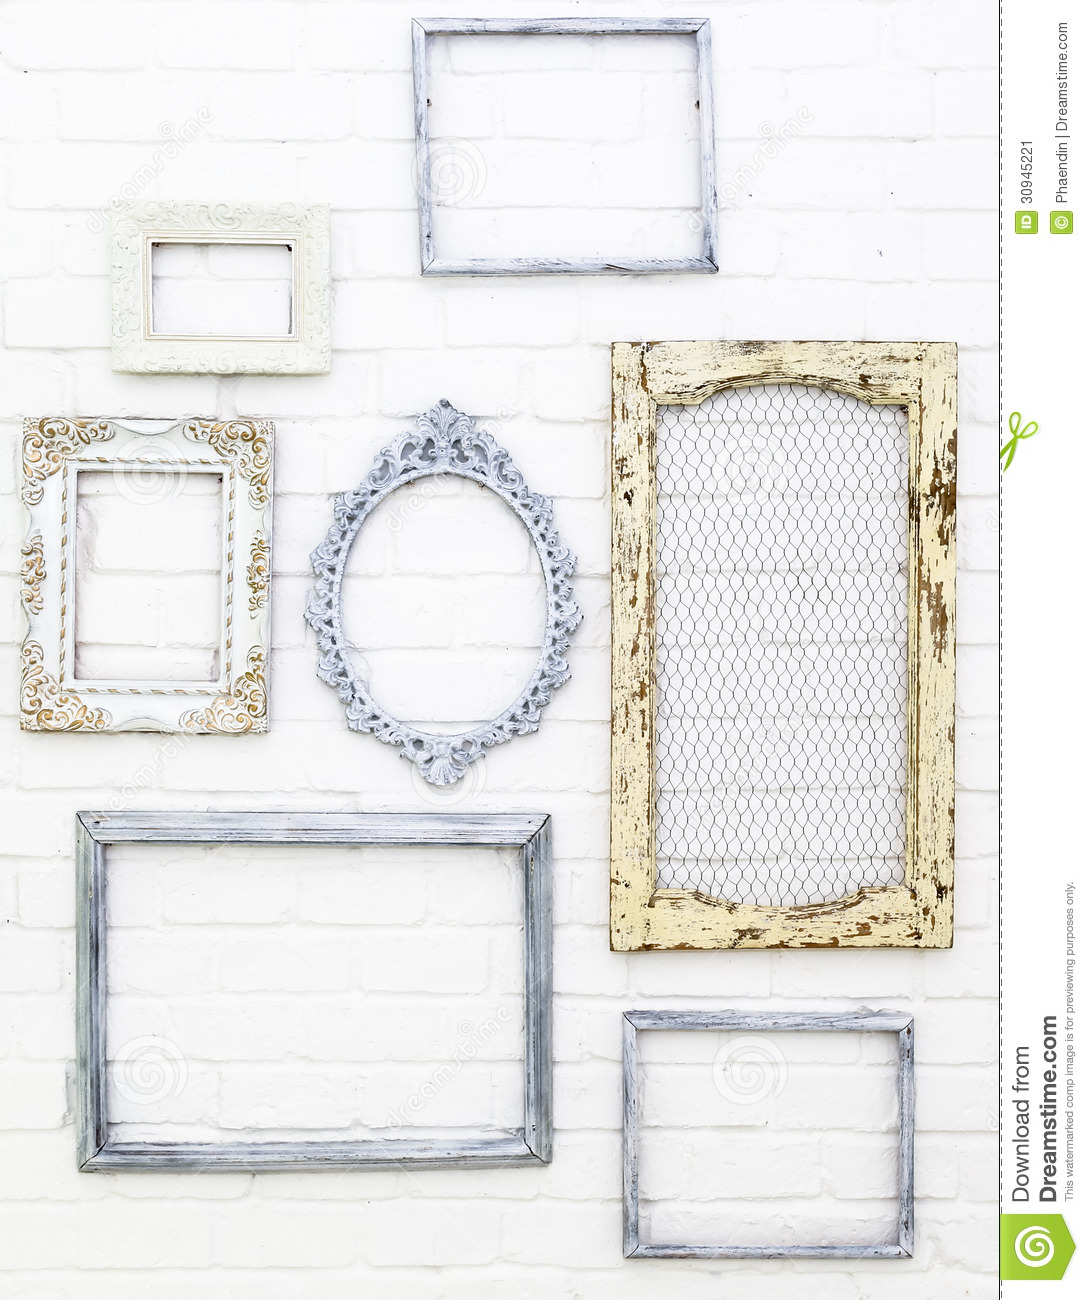 Vintage picture frames on white brick wall stock image - Antique white picture frames ...